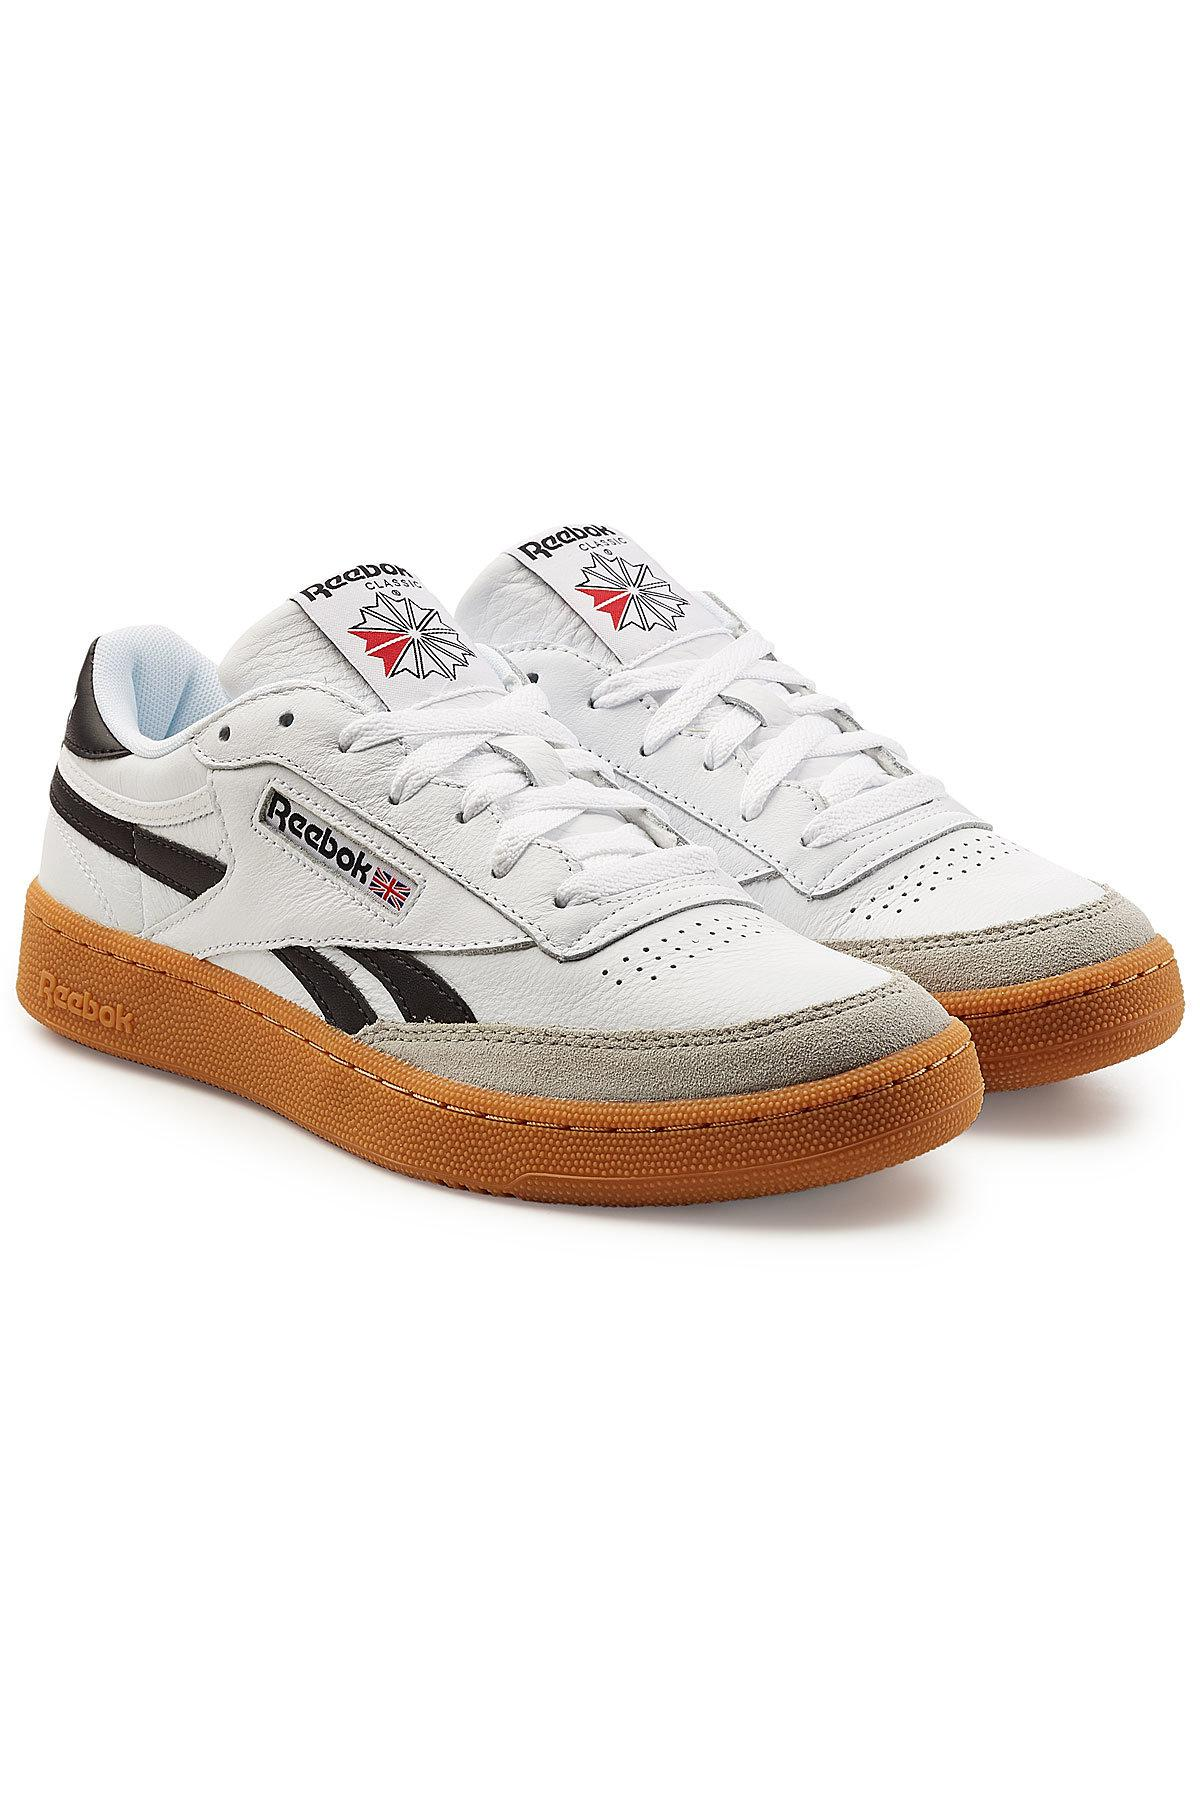 b474bc54fdea5 Reebok Revenge Plus Gum Leather And Suede Sneakers in White for Men ...